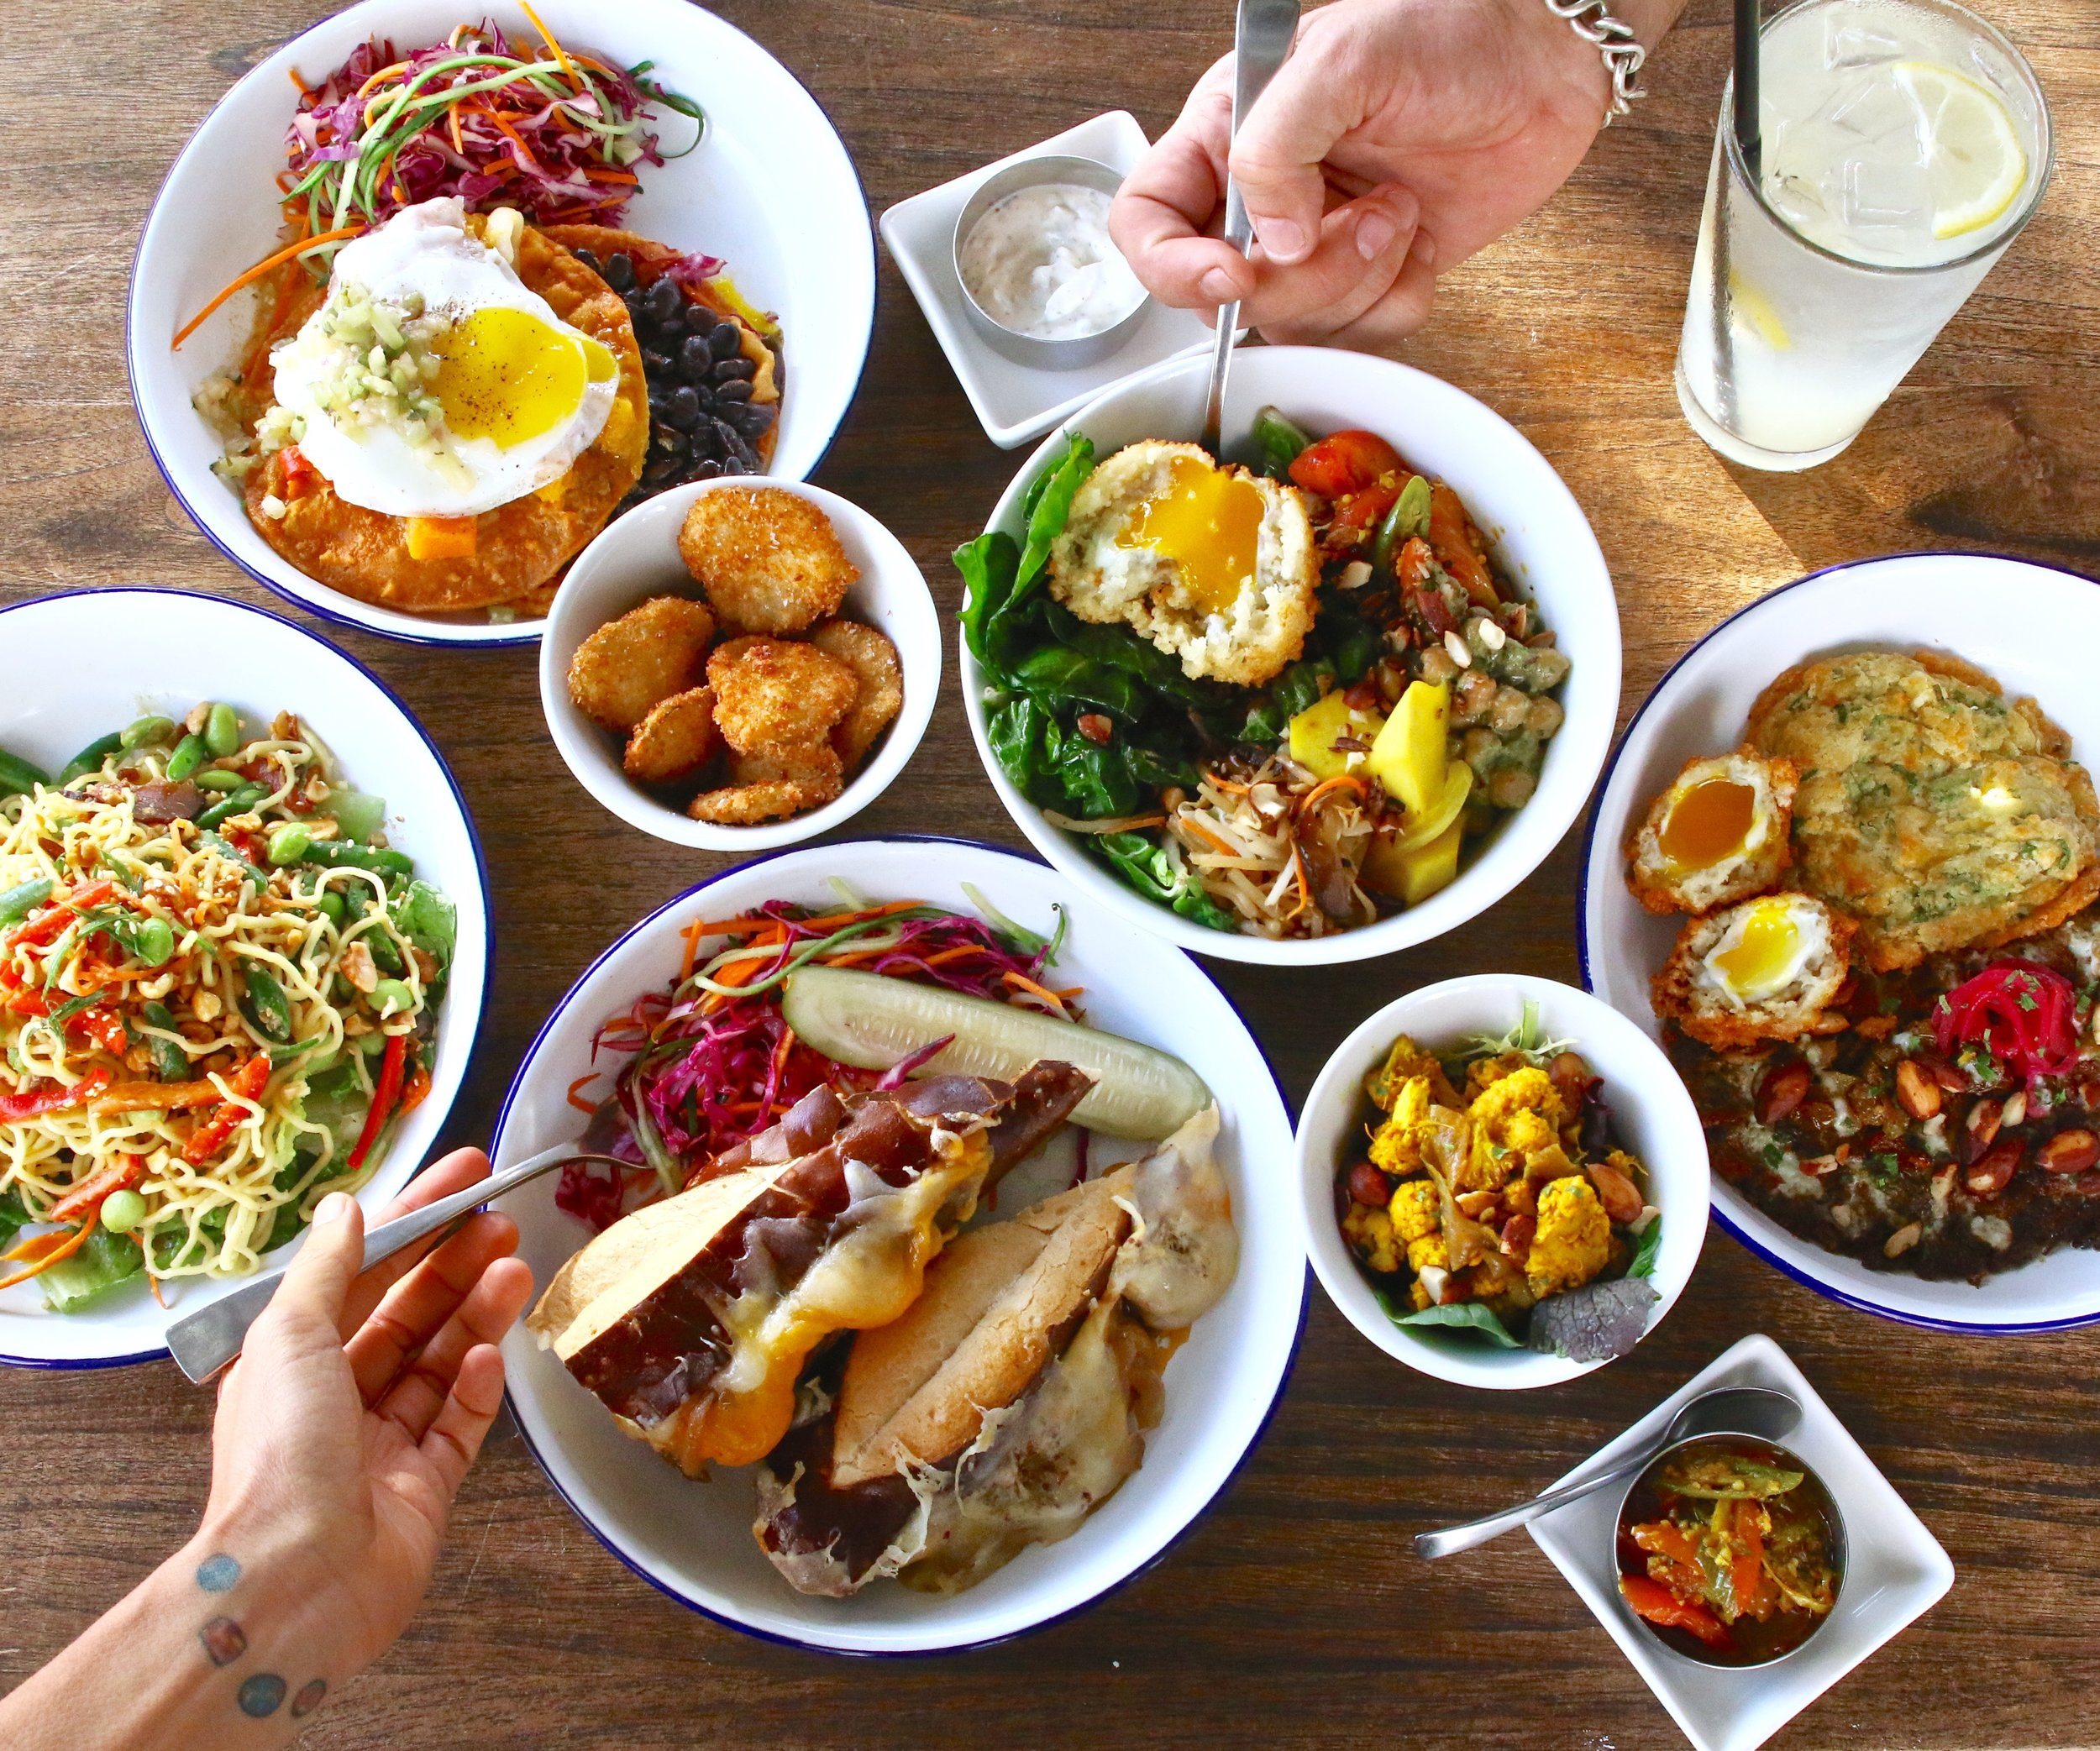 assorted dishes.jpg